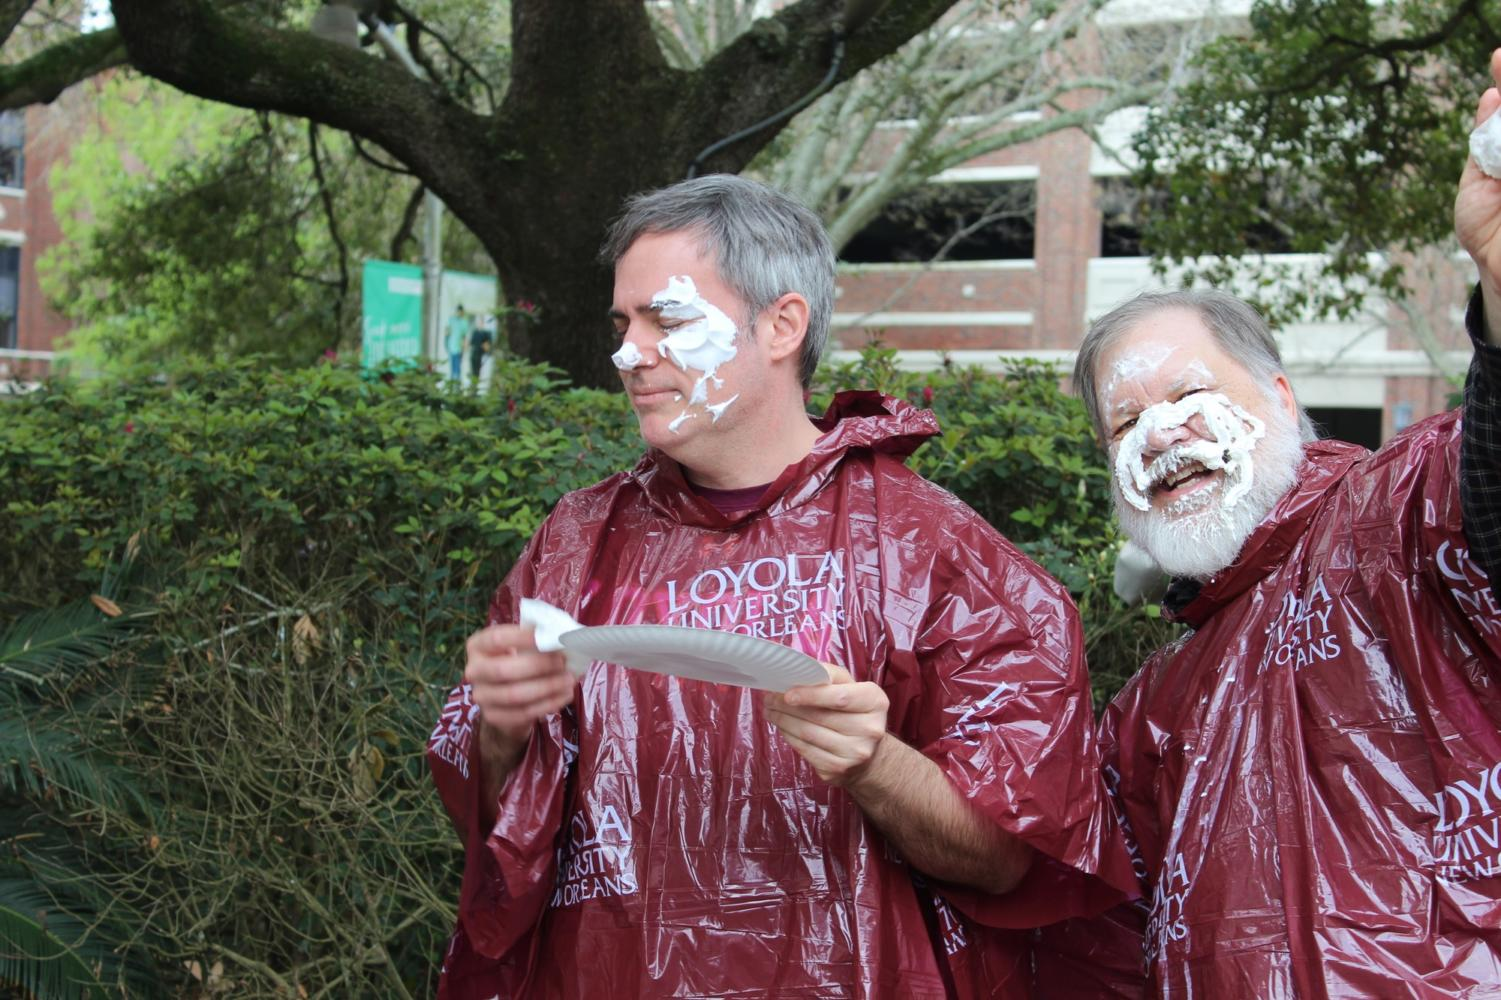 Dr.+Berendzen+and+Dr.+Hood+react+to+getting+pied+at+Pie-A-Professor.